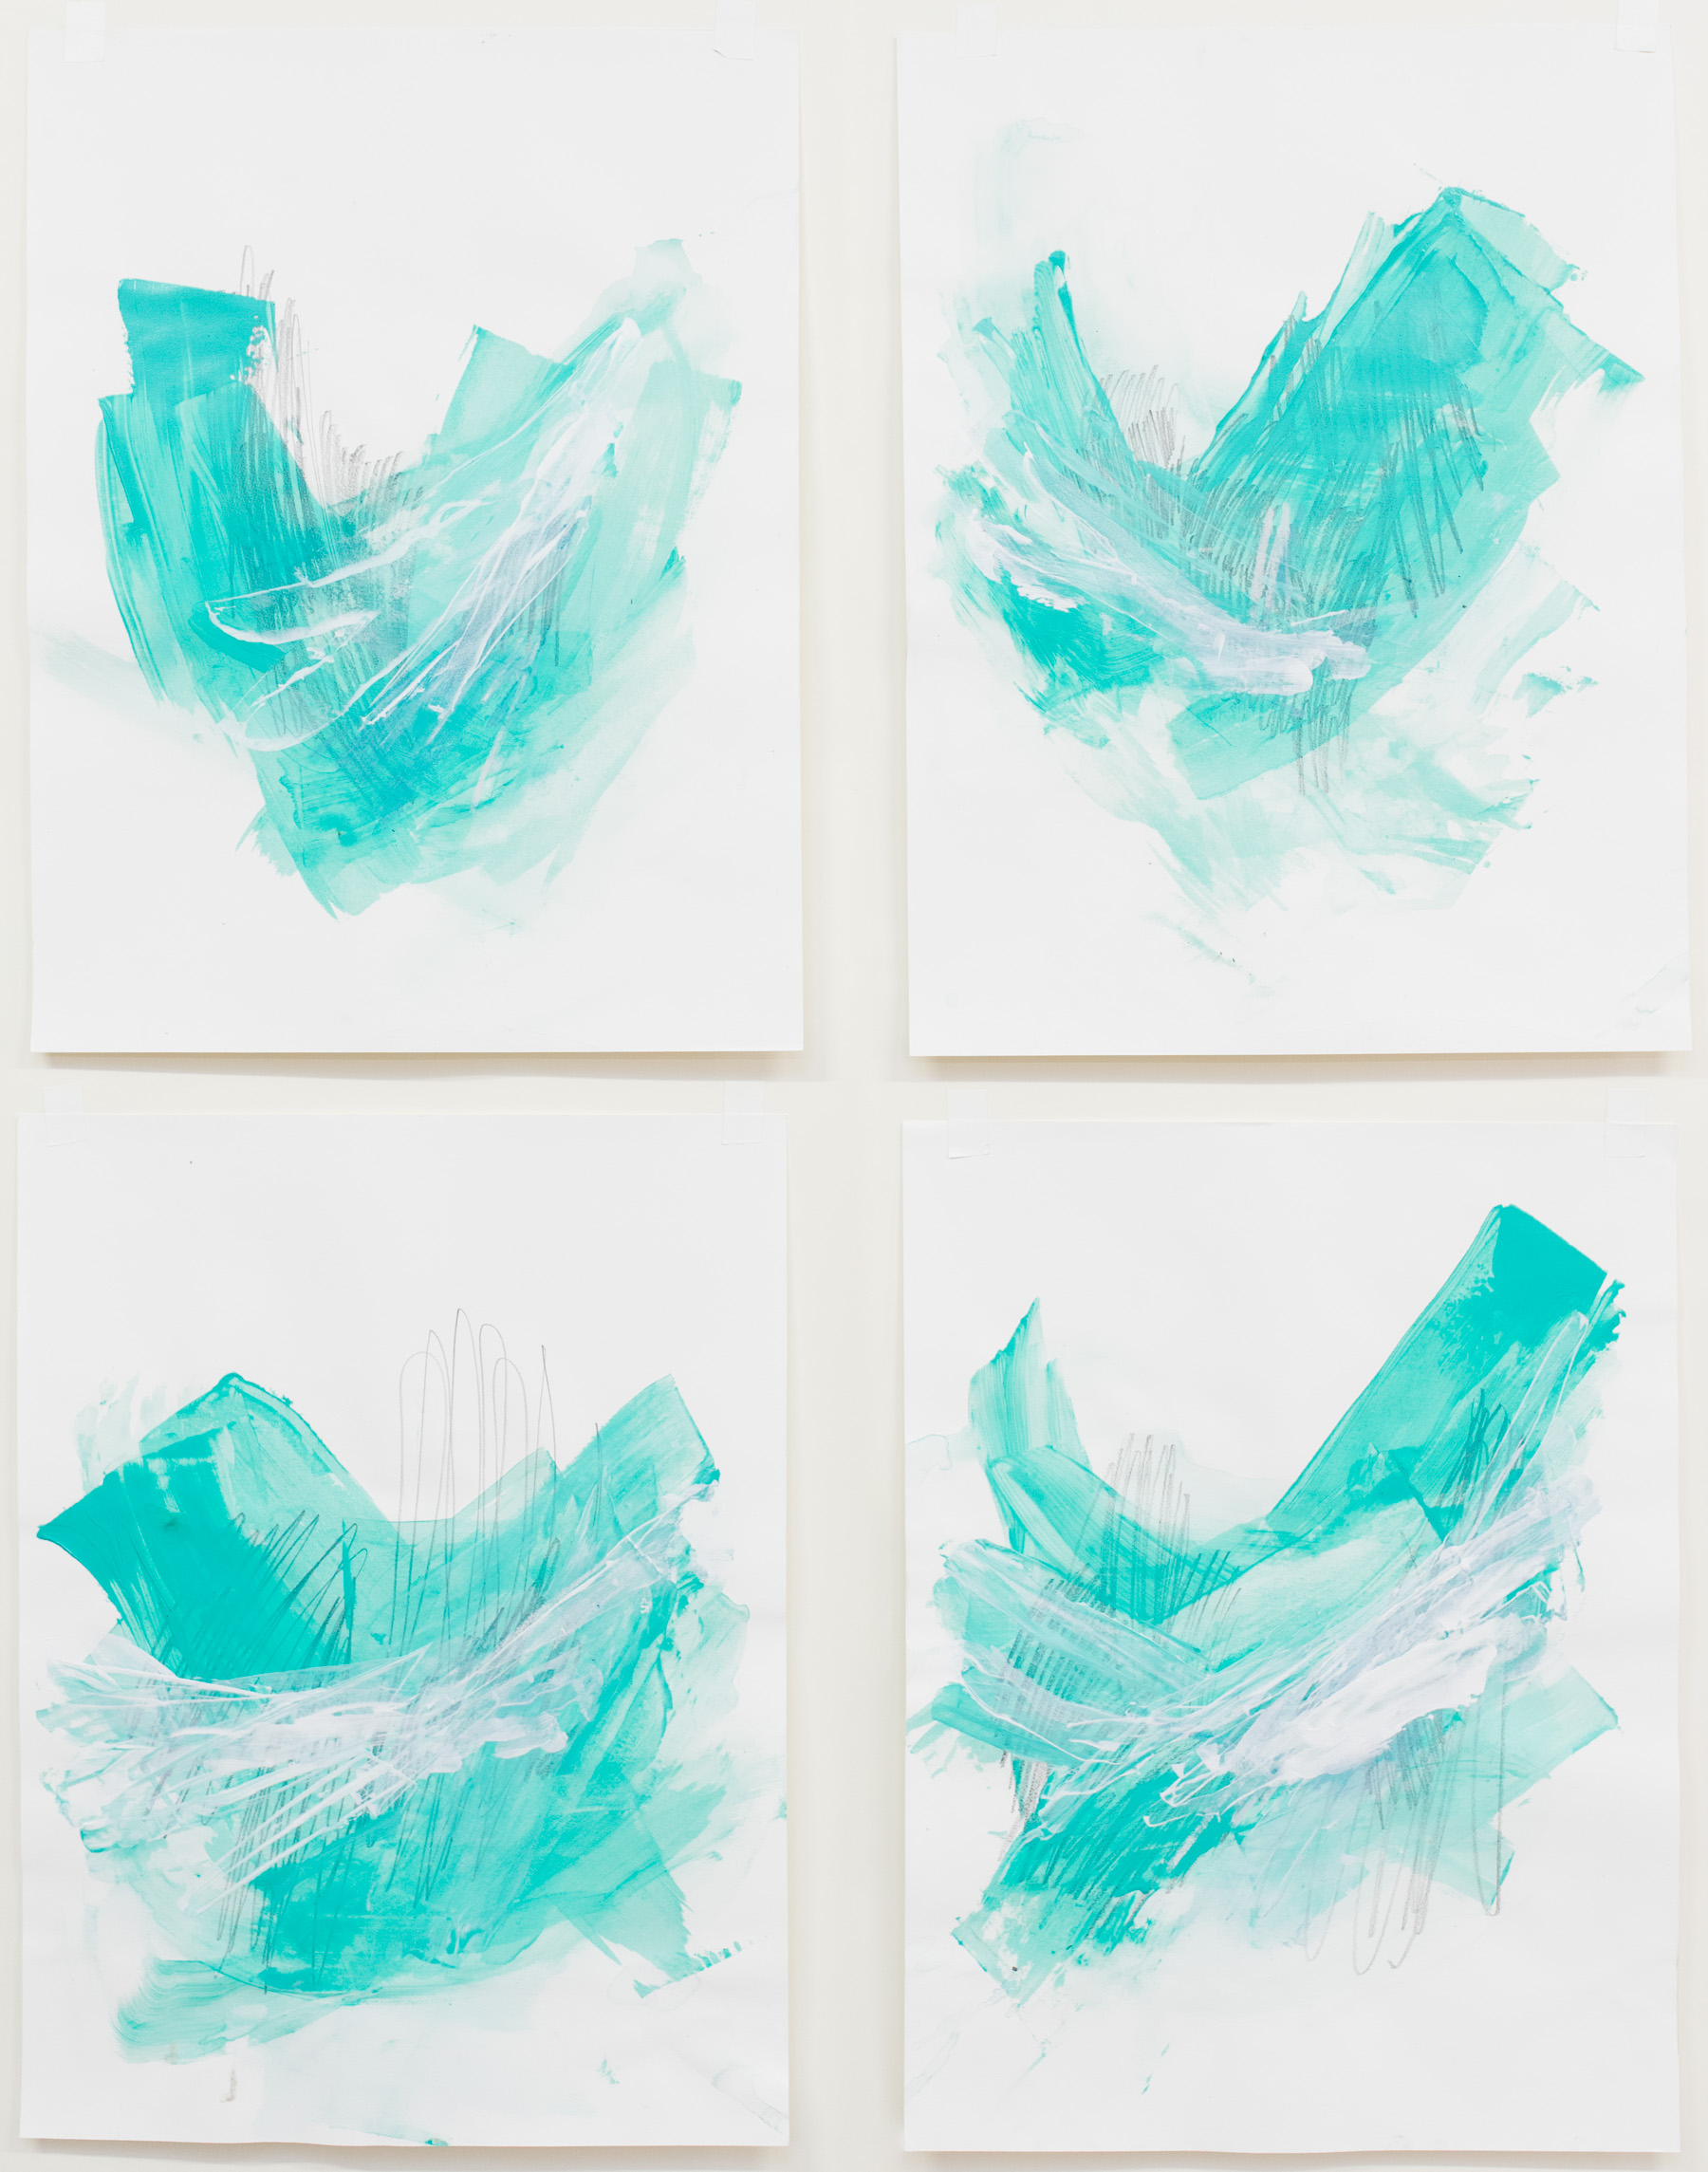 """Cold, Smoother and Sweet #1-4 , 18""""x24"""" each, acrylic on paper, 2017, available"""